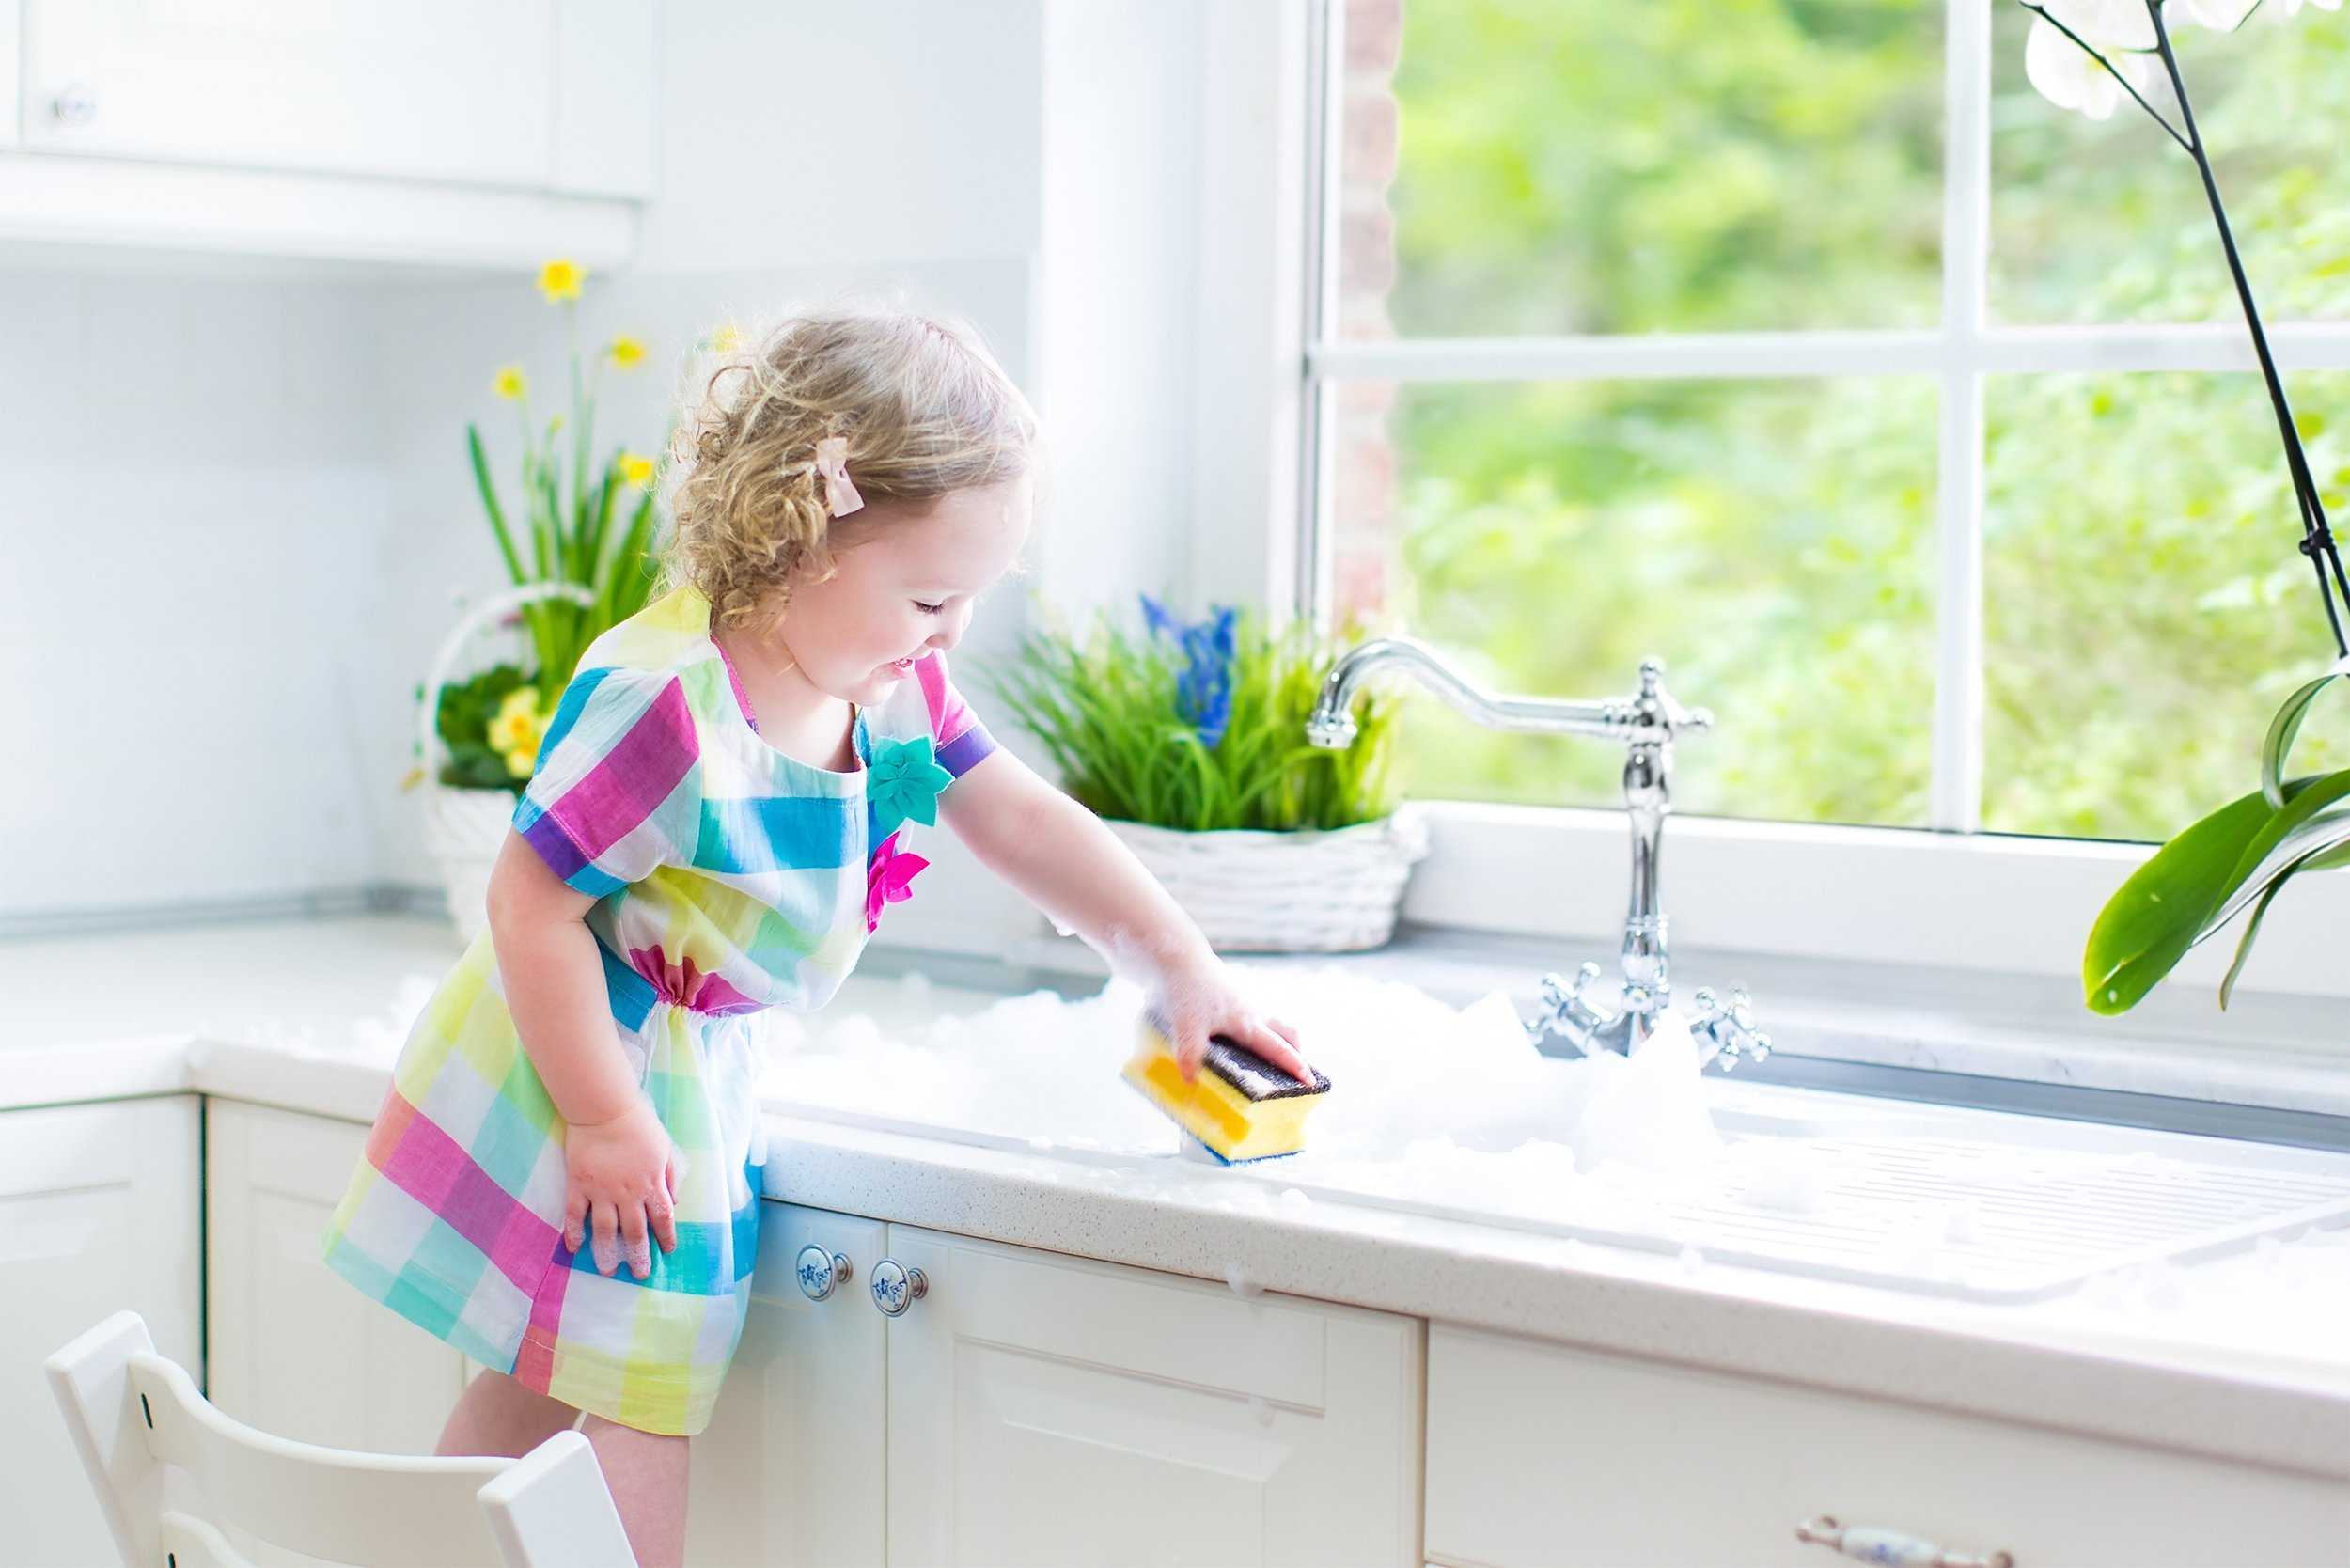 8 Steps to Making Your Home Healthier for Your Family